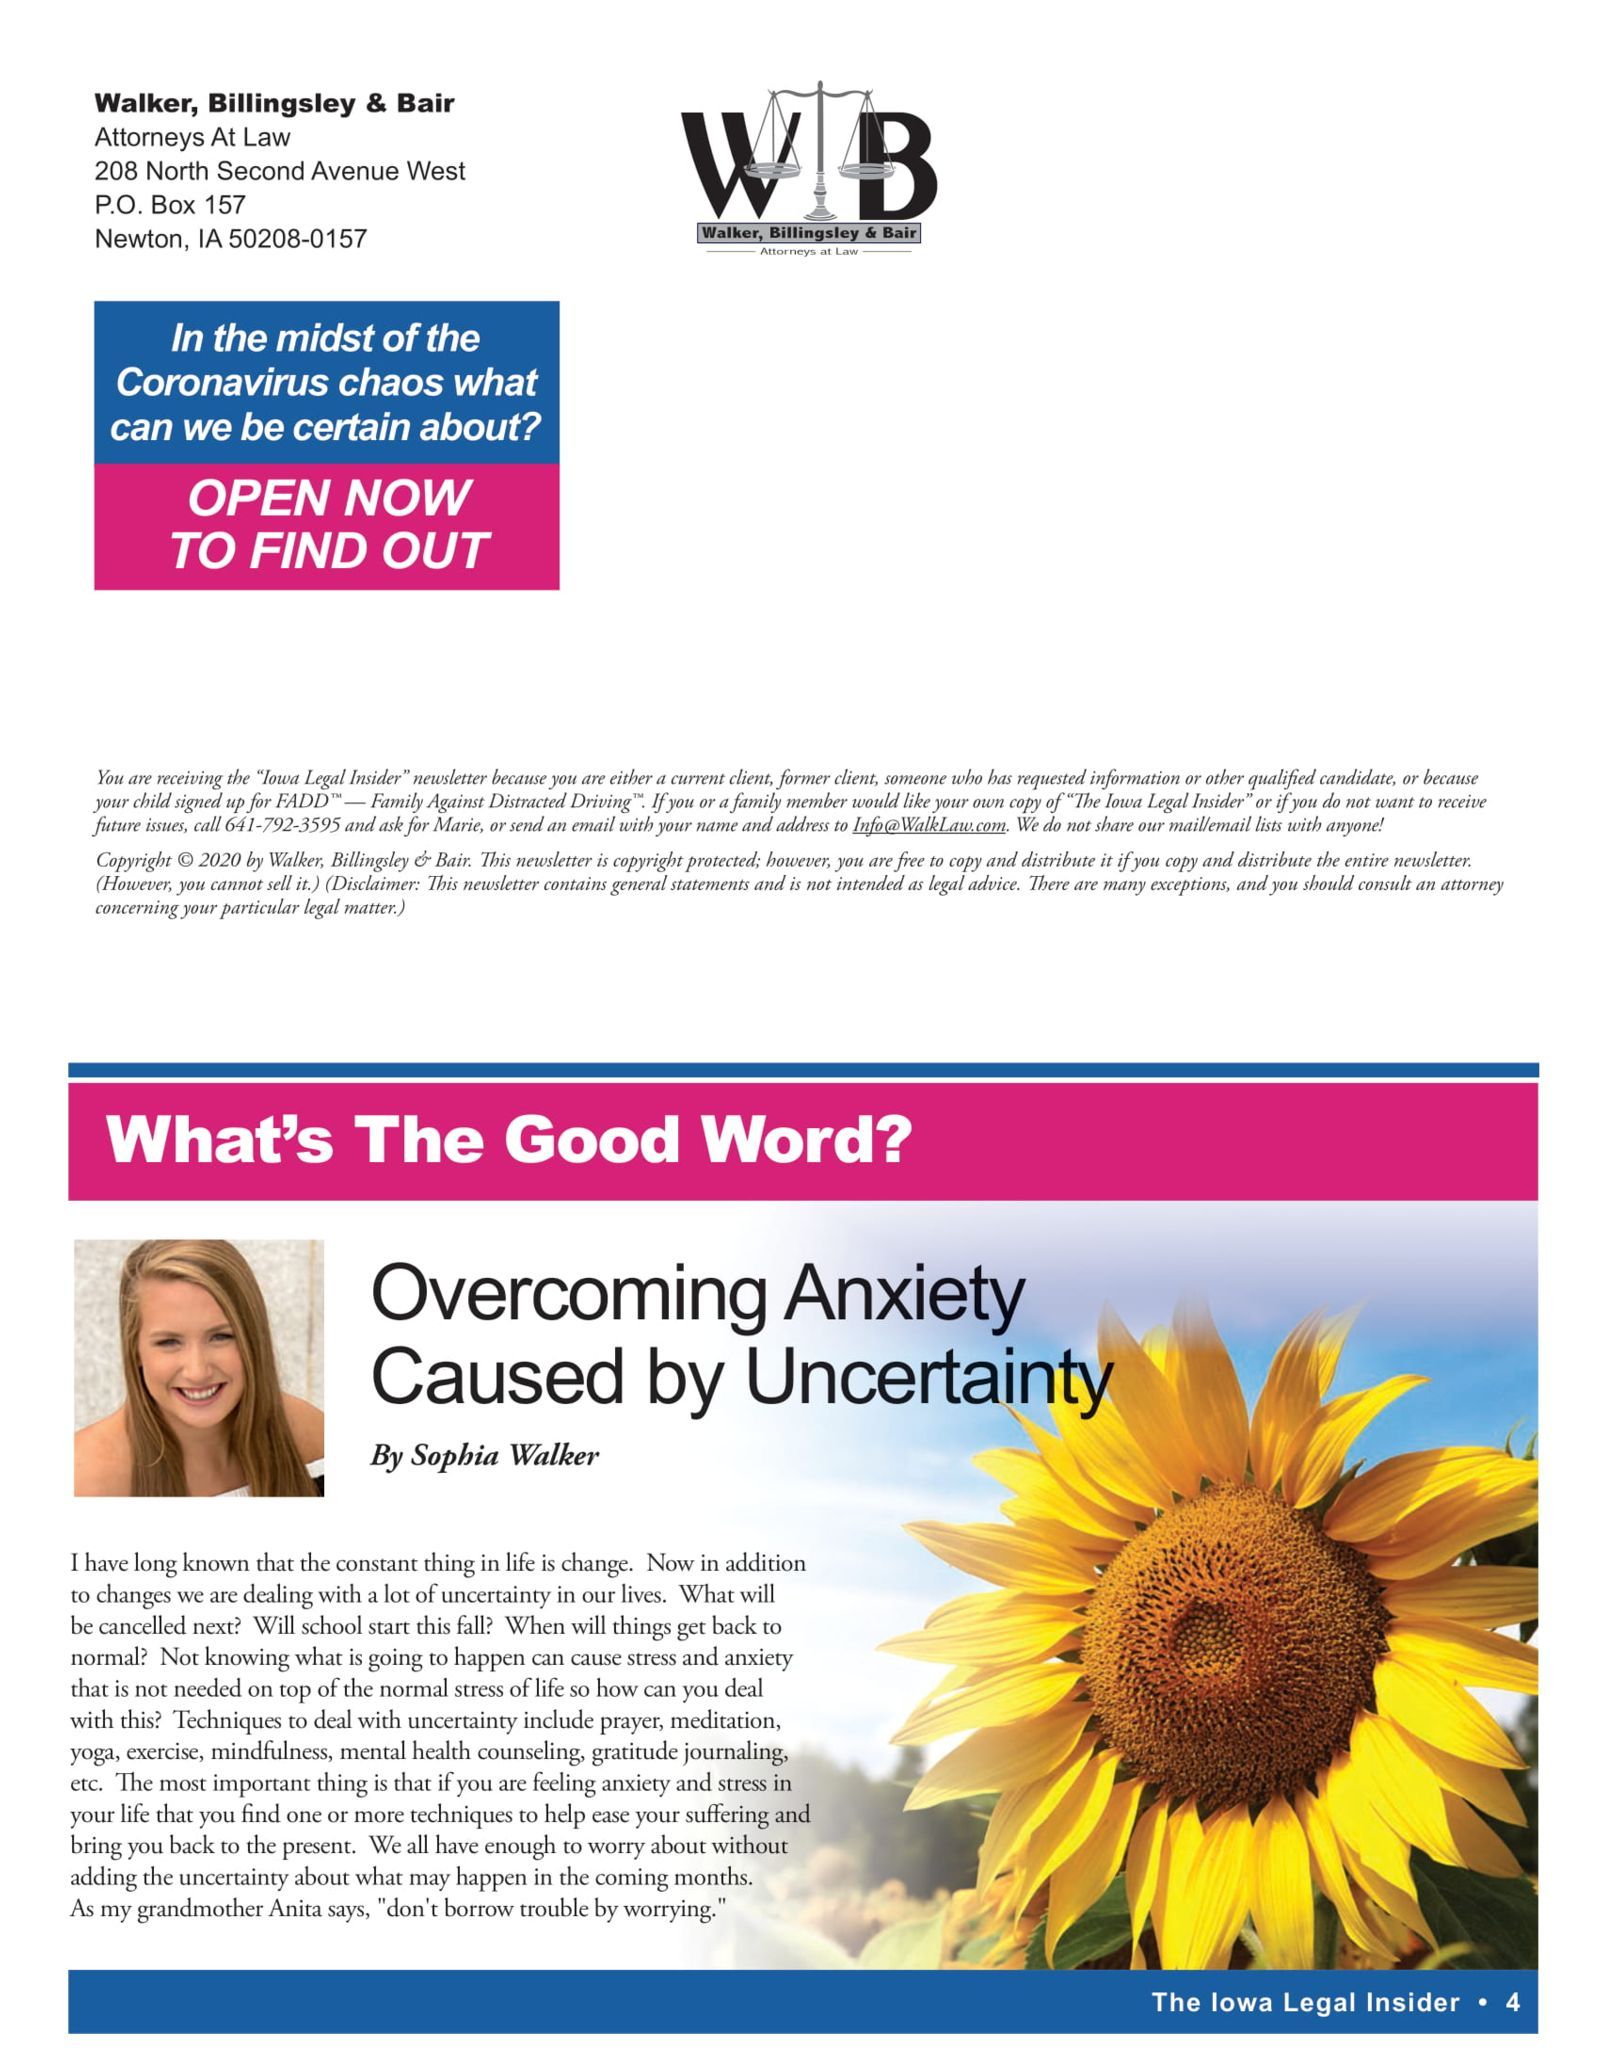 Iowa Legal Insider Overcoming Anxiety